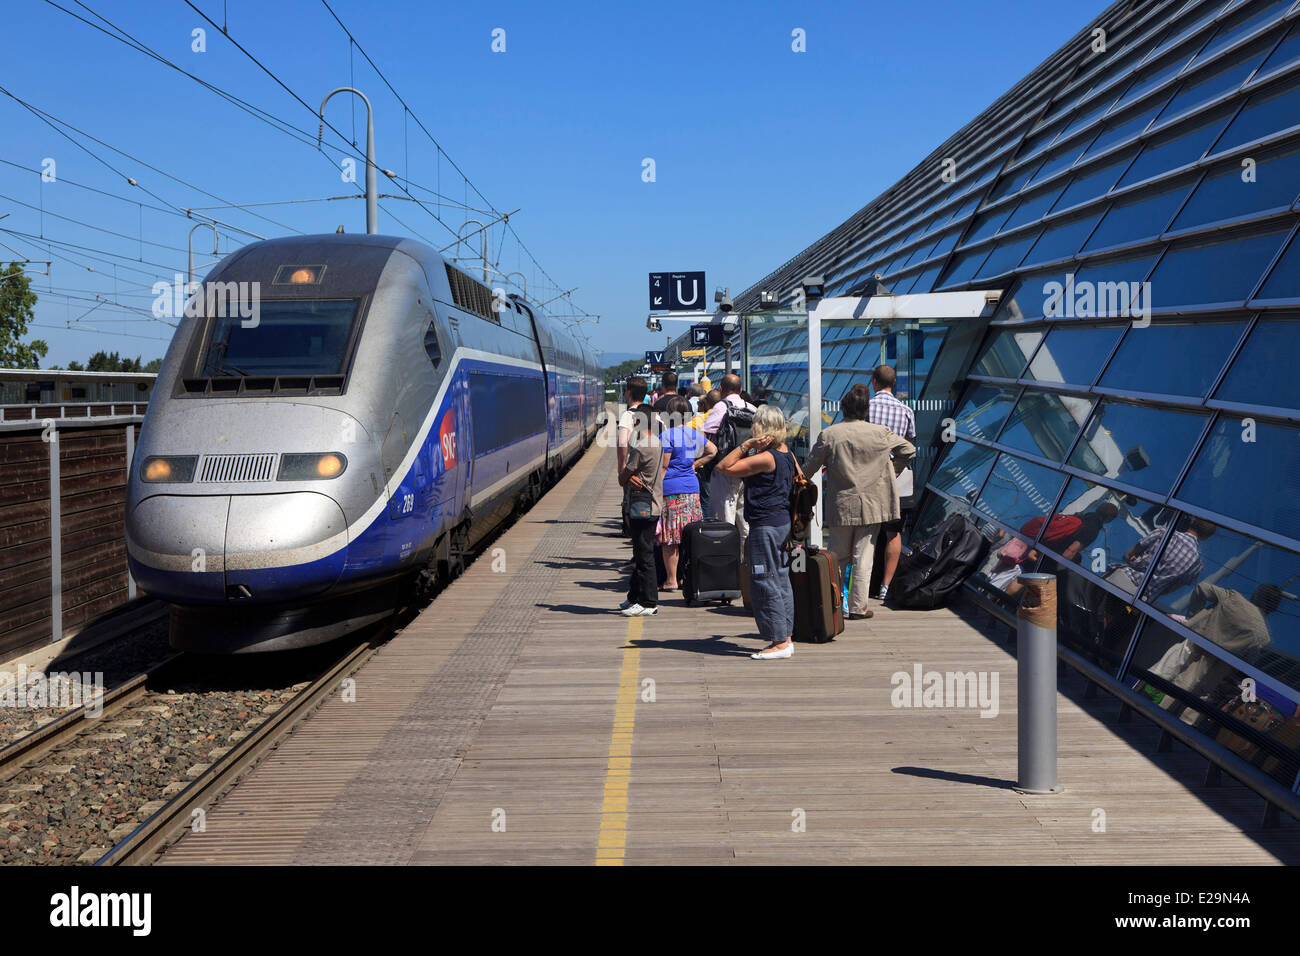 tgv train stock photos tgv train stock images alamy. Black Bedroom Furniture Sets. Home Design Ideas